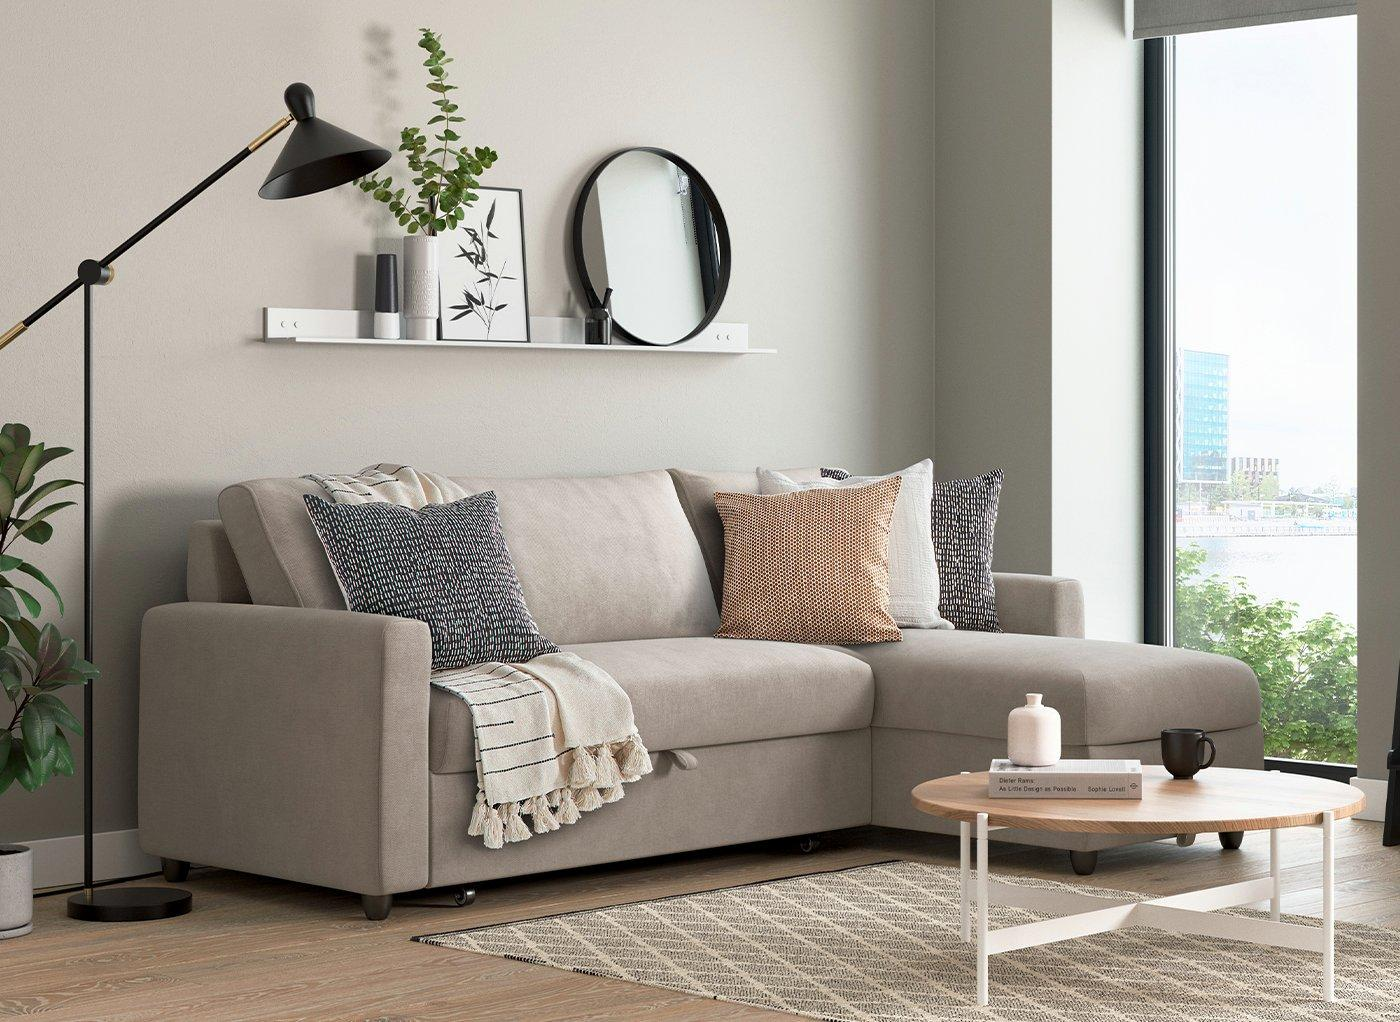 limerick-3-seater-sofa-bed